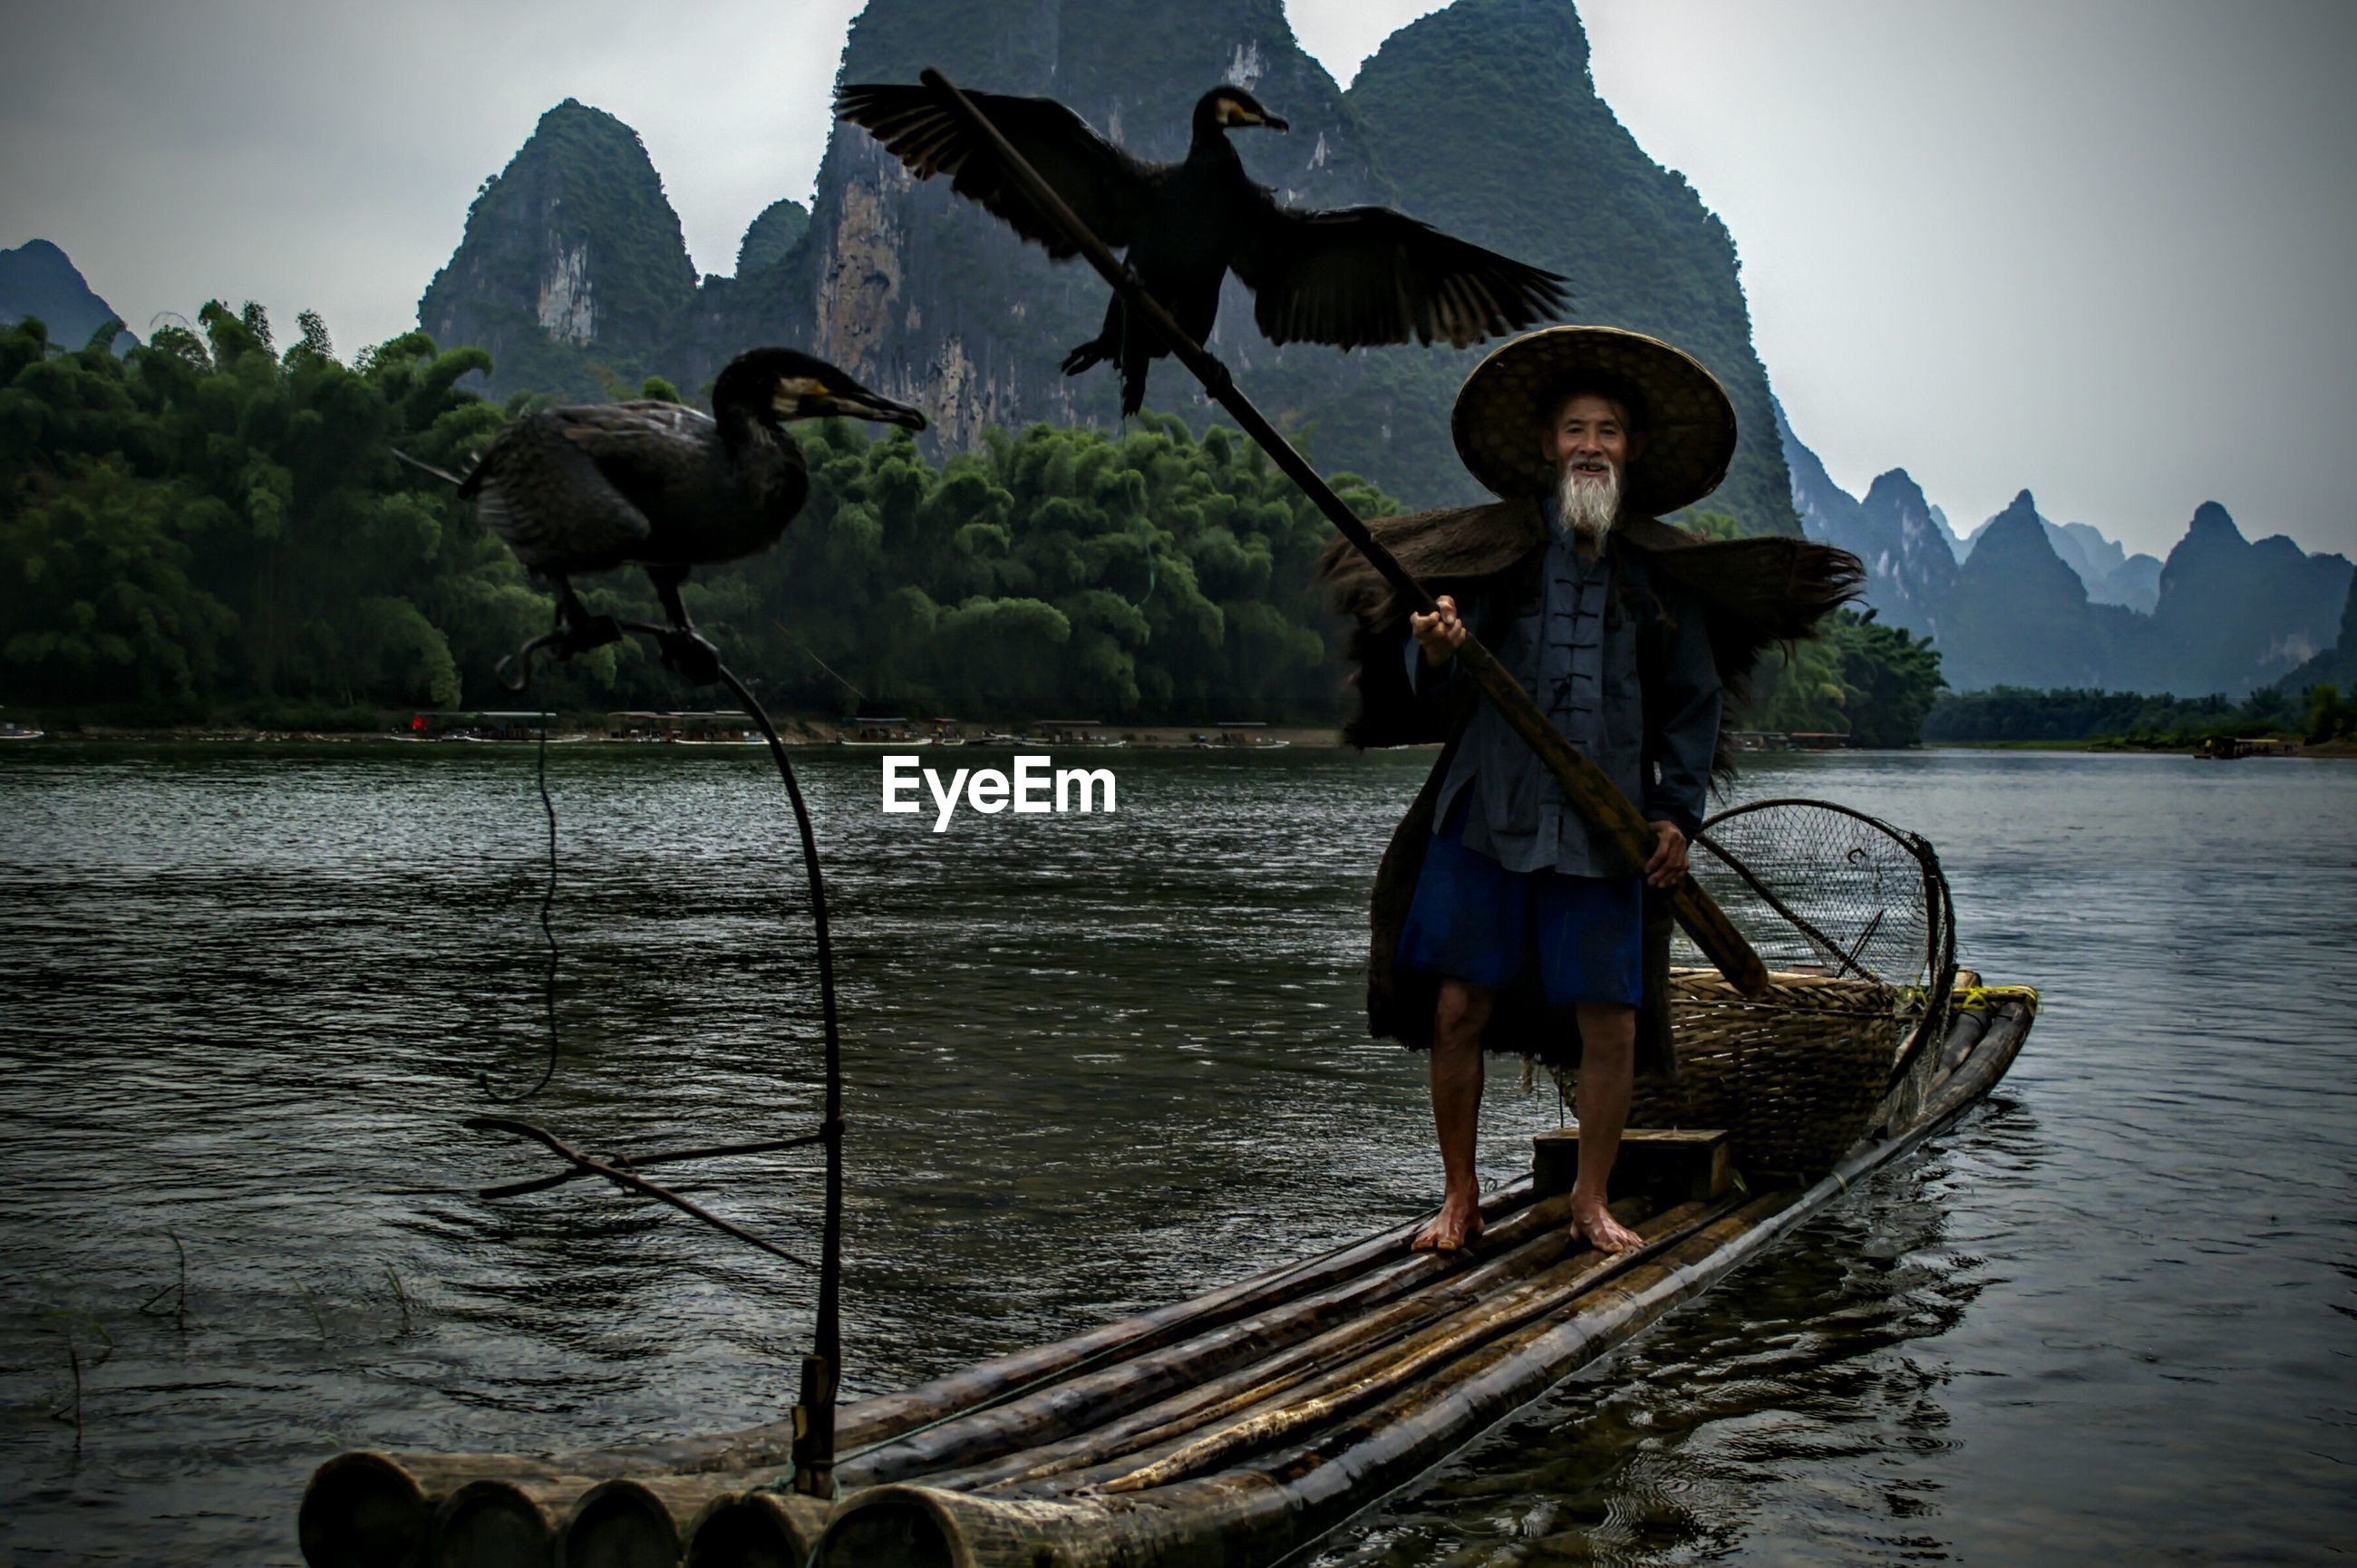 Chinese fisherman on traditional wooden raft